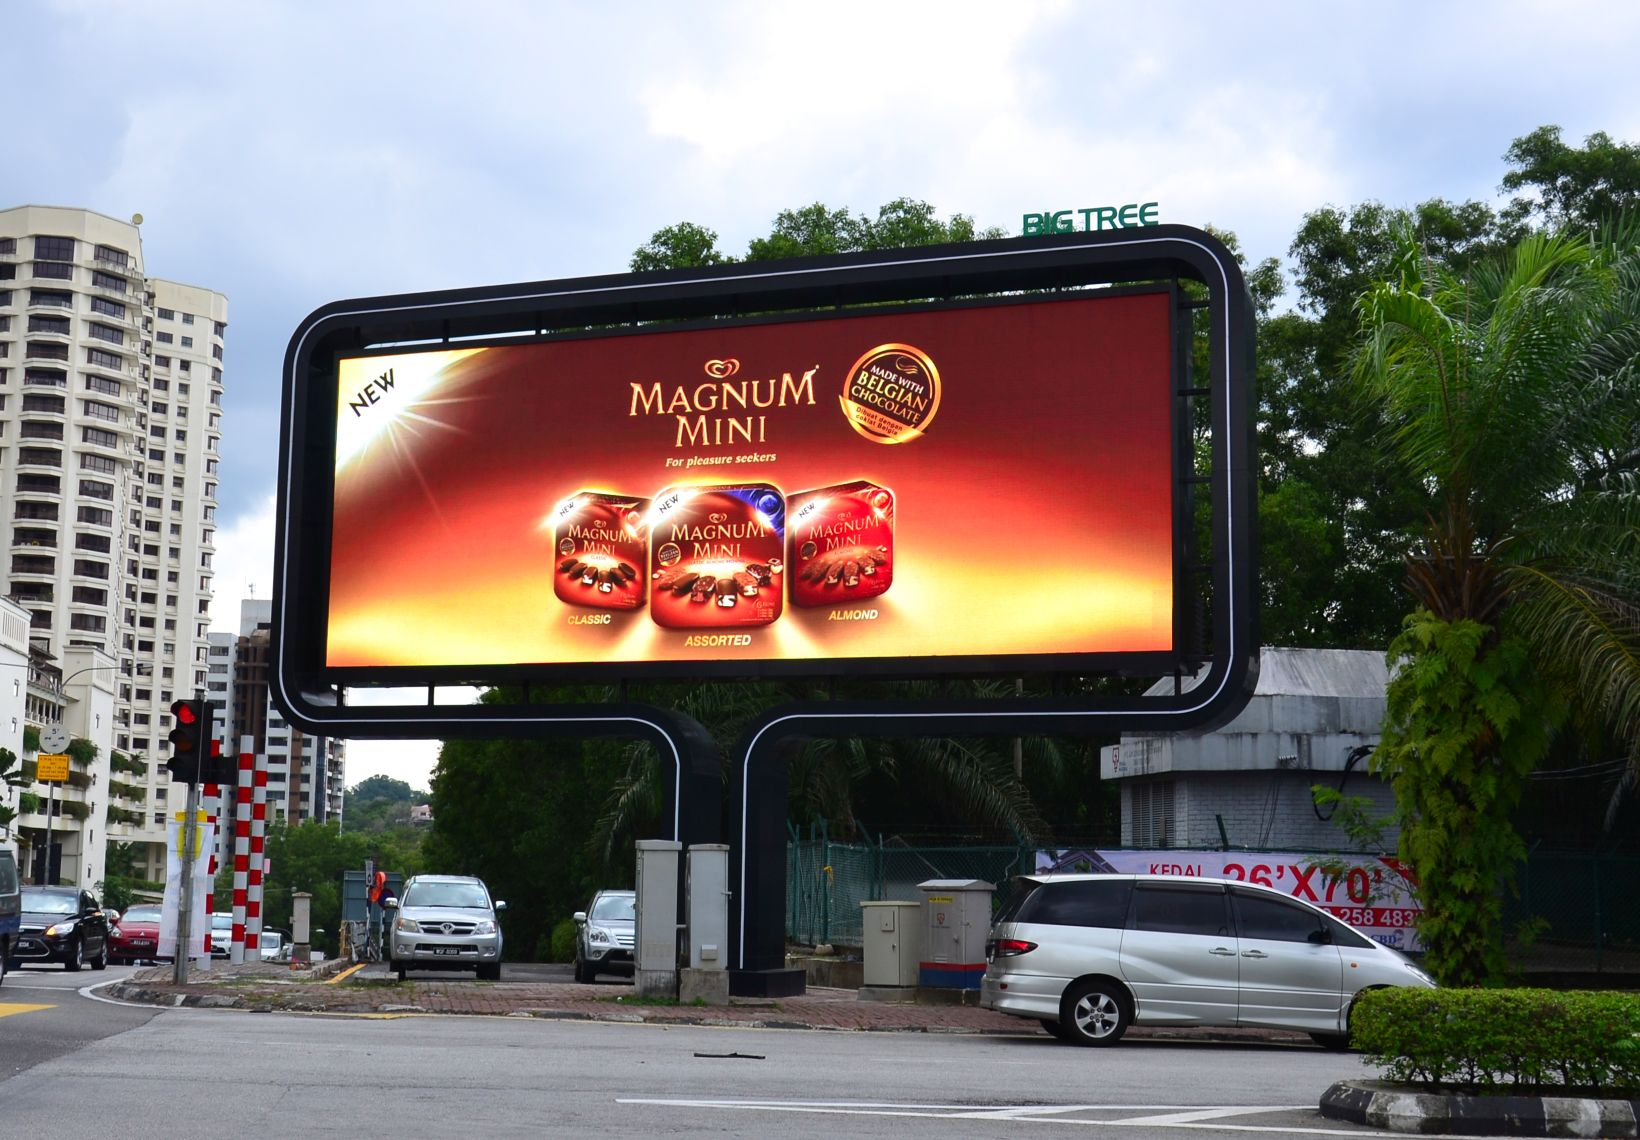 LEDtronics : LED Displays | Digital Billboards | Media Facade